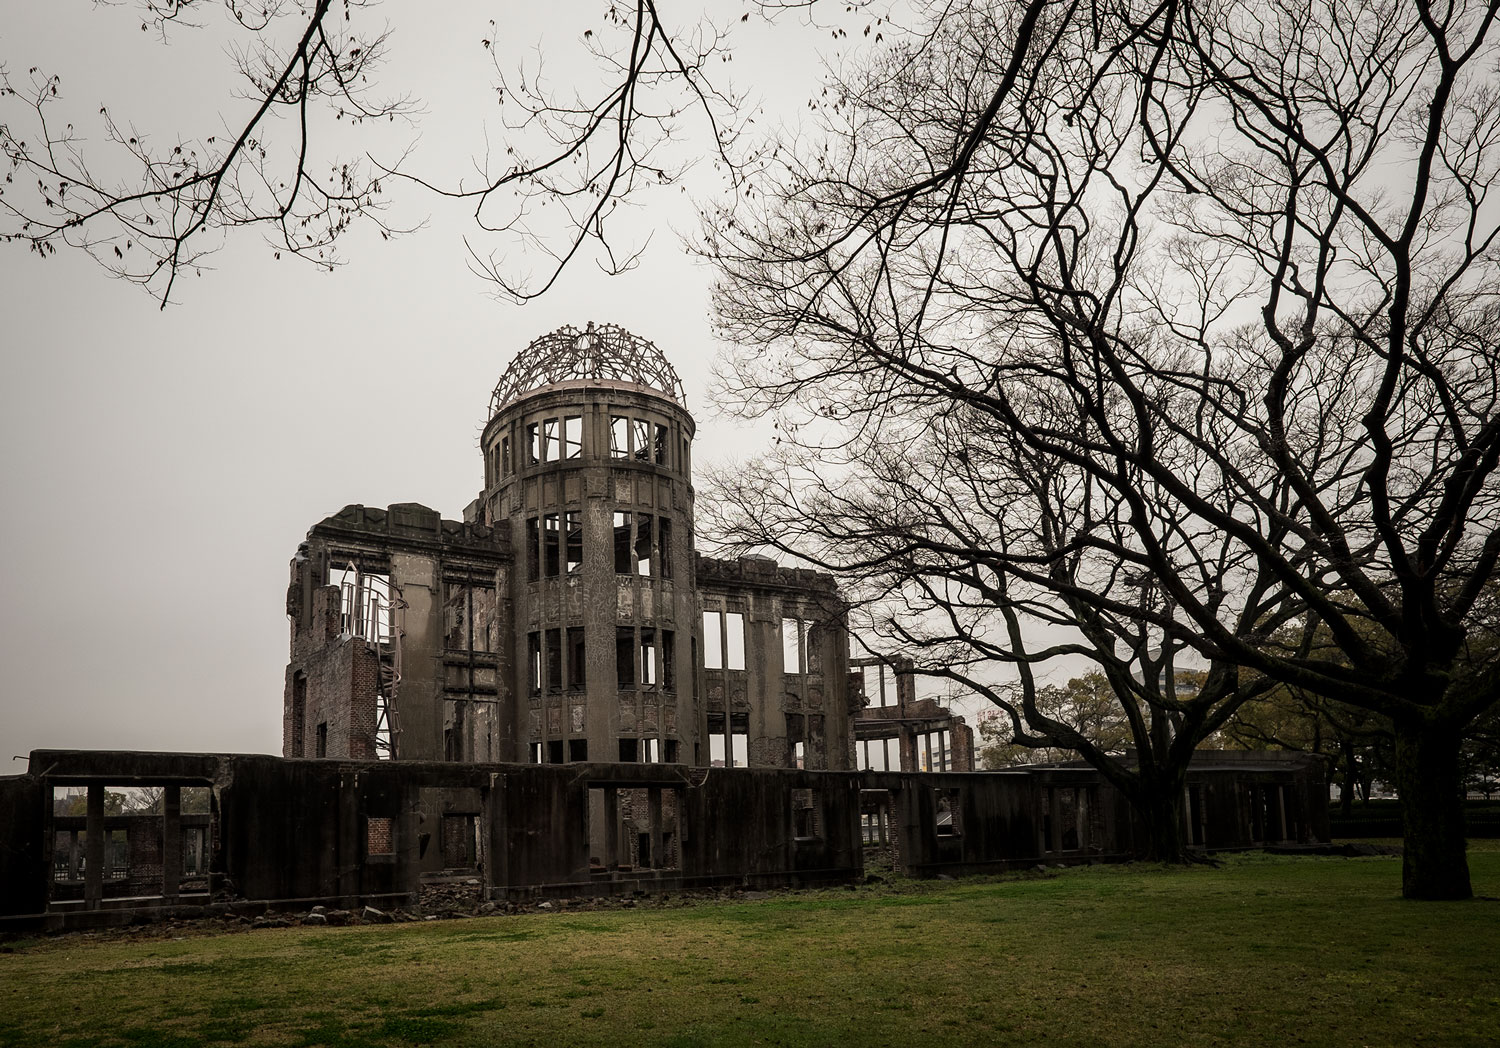 The Hiroshima Peace Memorial (pretty much the only building that remained after the atomic bomb)